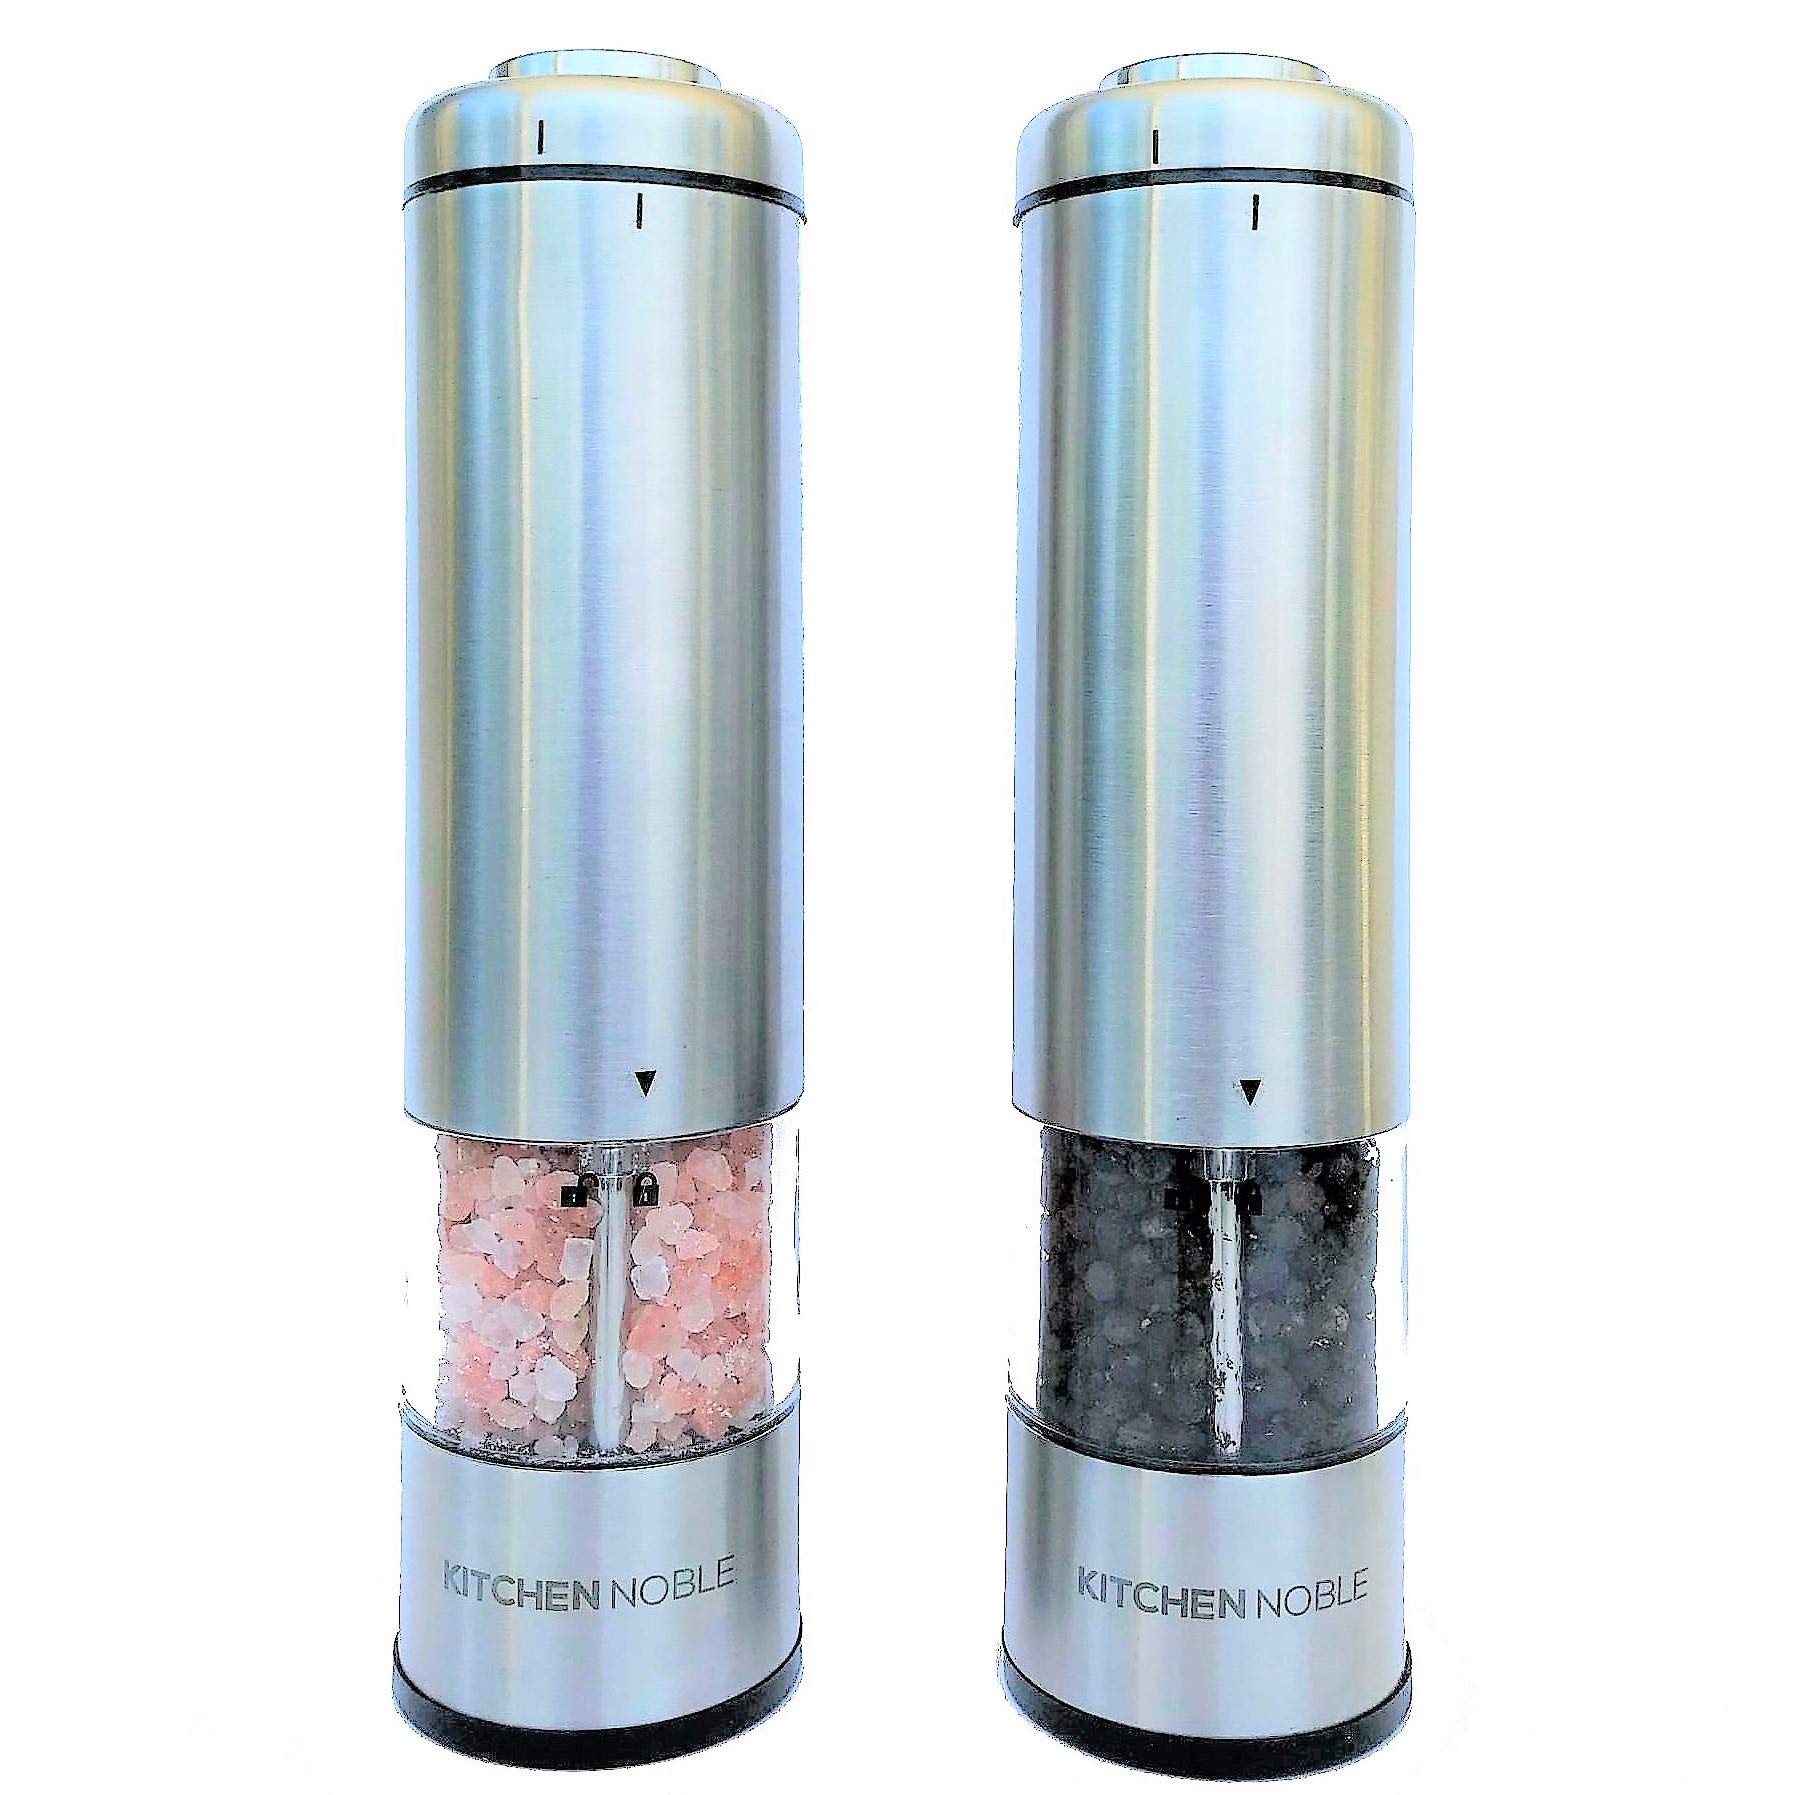 Electric Salt and Pepper Grinder Set by Kitchen Noble - Ceramic Grinding Burrs - Adjustable Coarseness Settings - LED Light - Push Button Operation - Ideal for Grinding Peppercorns,Sea Salt and Spices